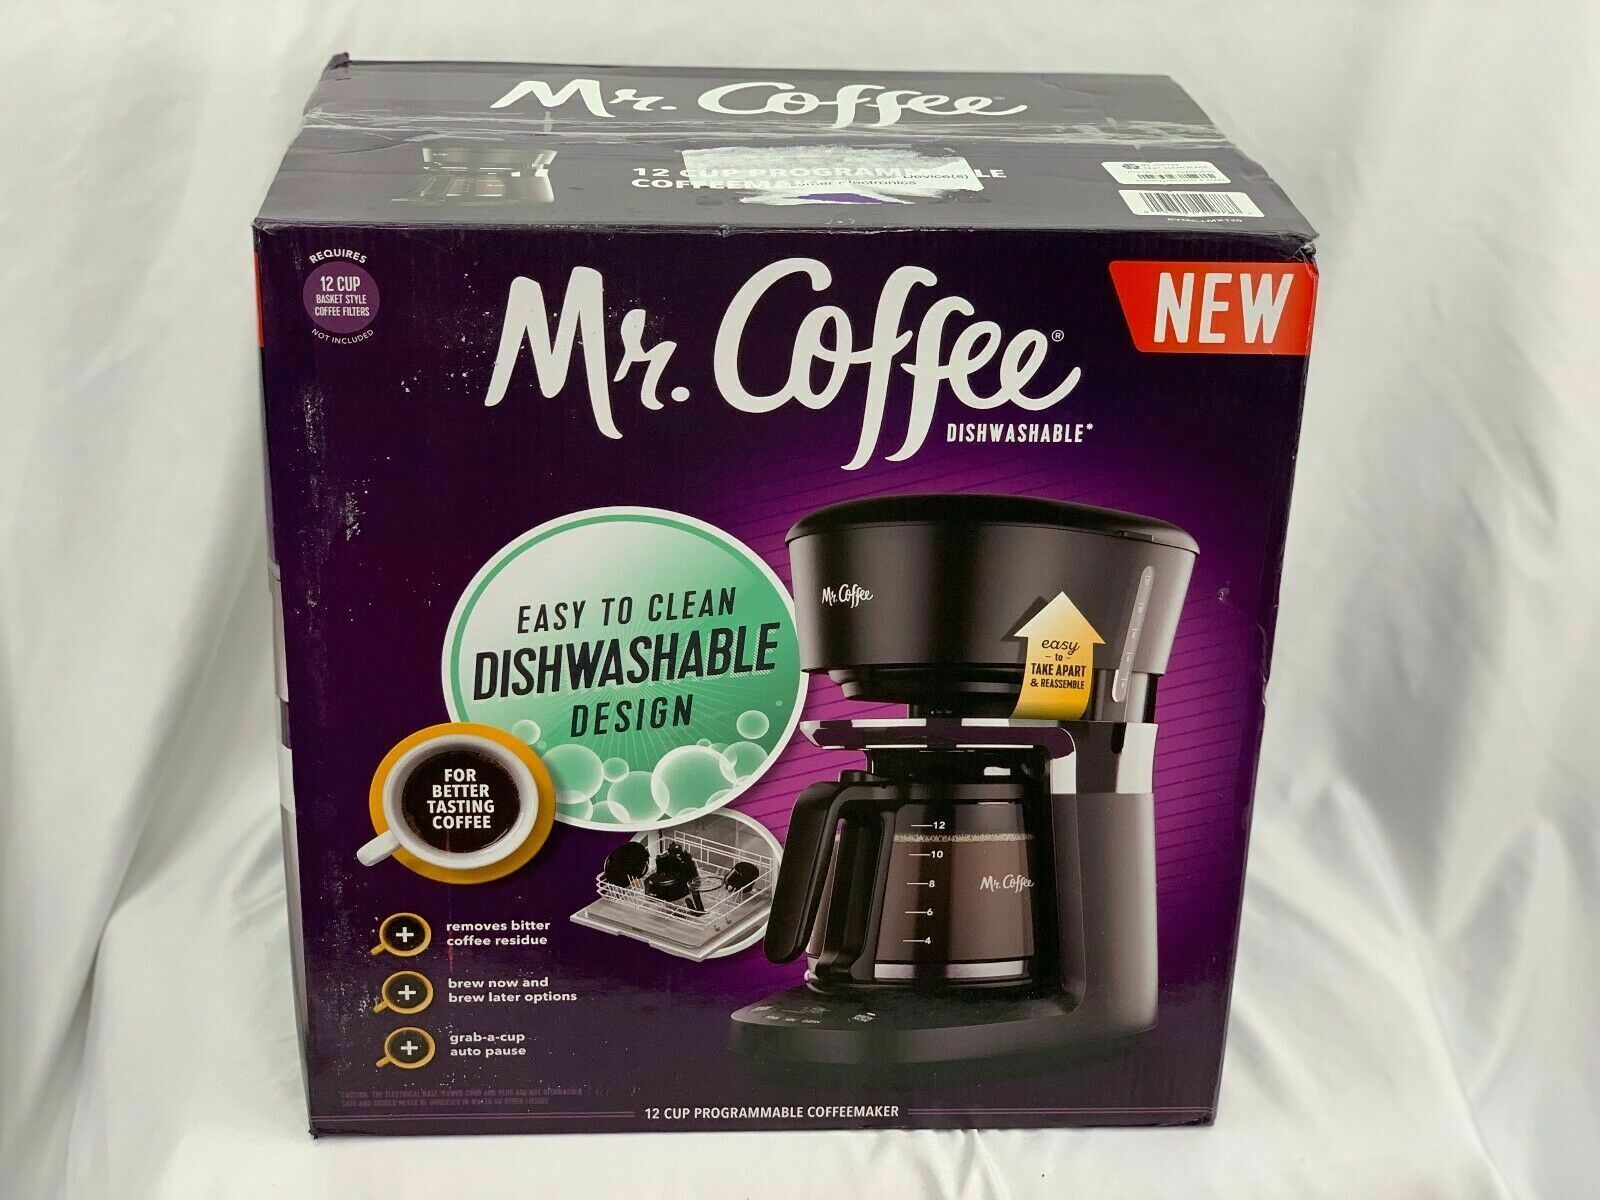 New Mr Coffee Coffee Maker Dishwasher Safe Design Single Cup Coffee Maker Cuisinart Coffee Maker Iced Tea Maker